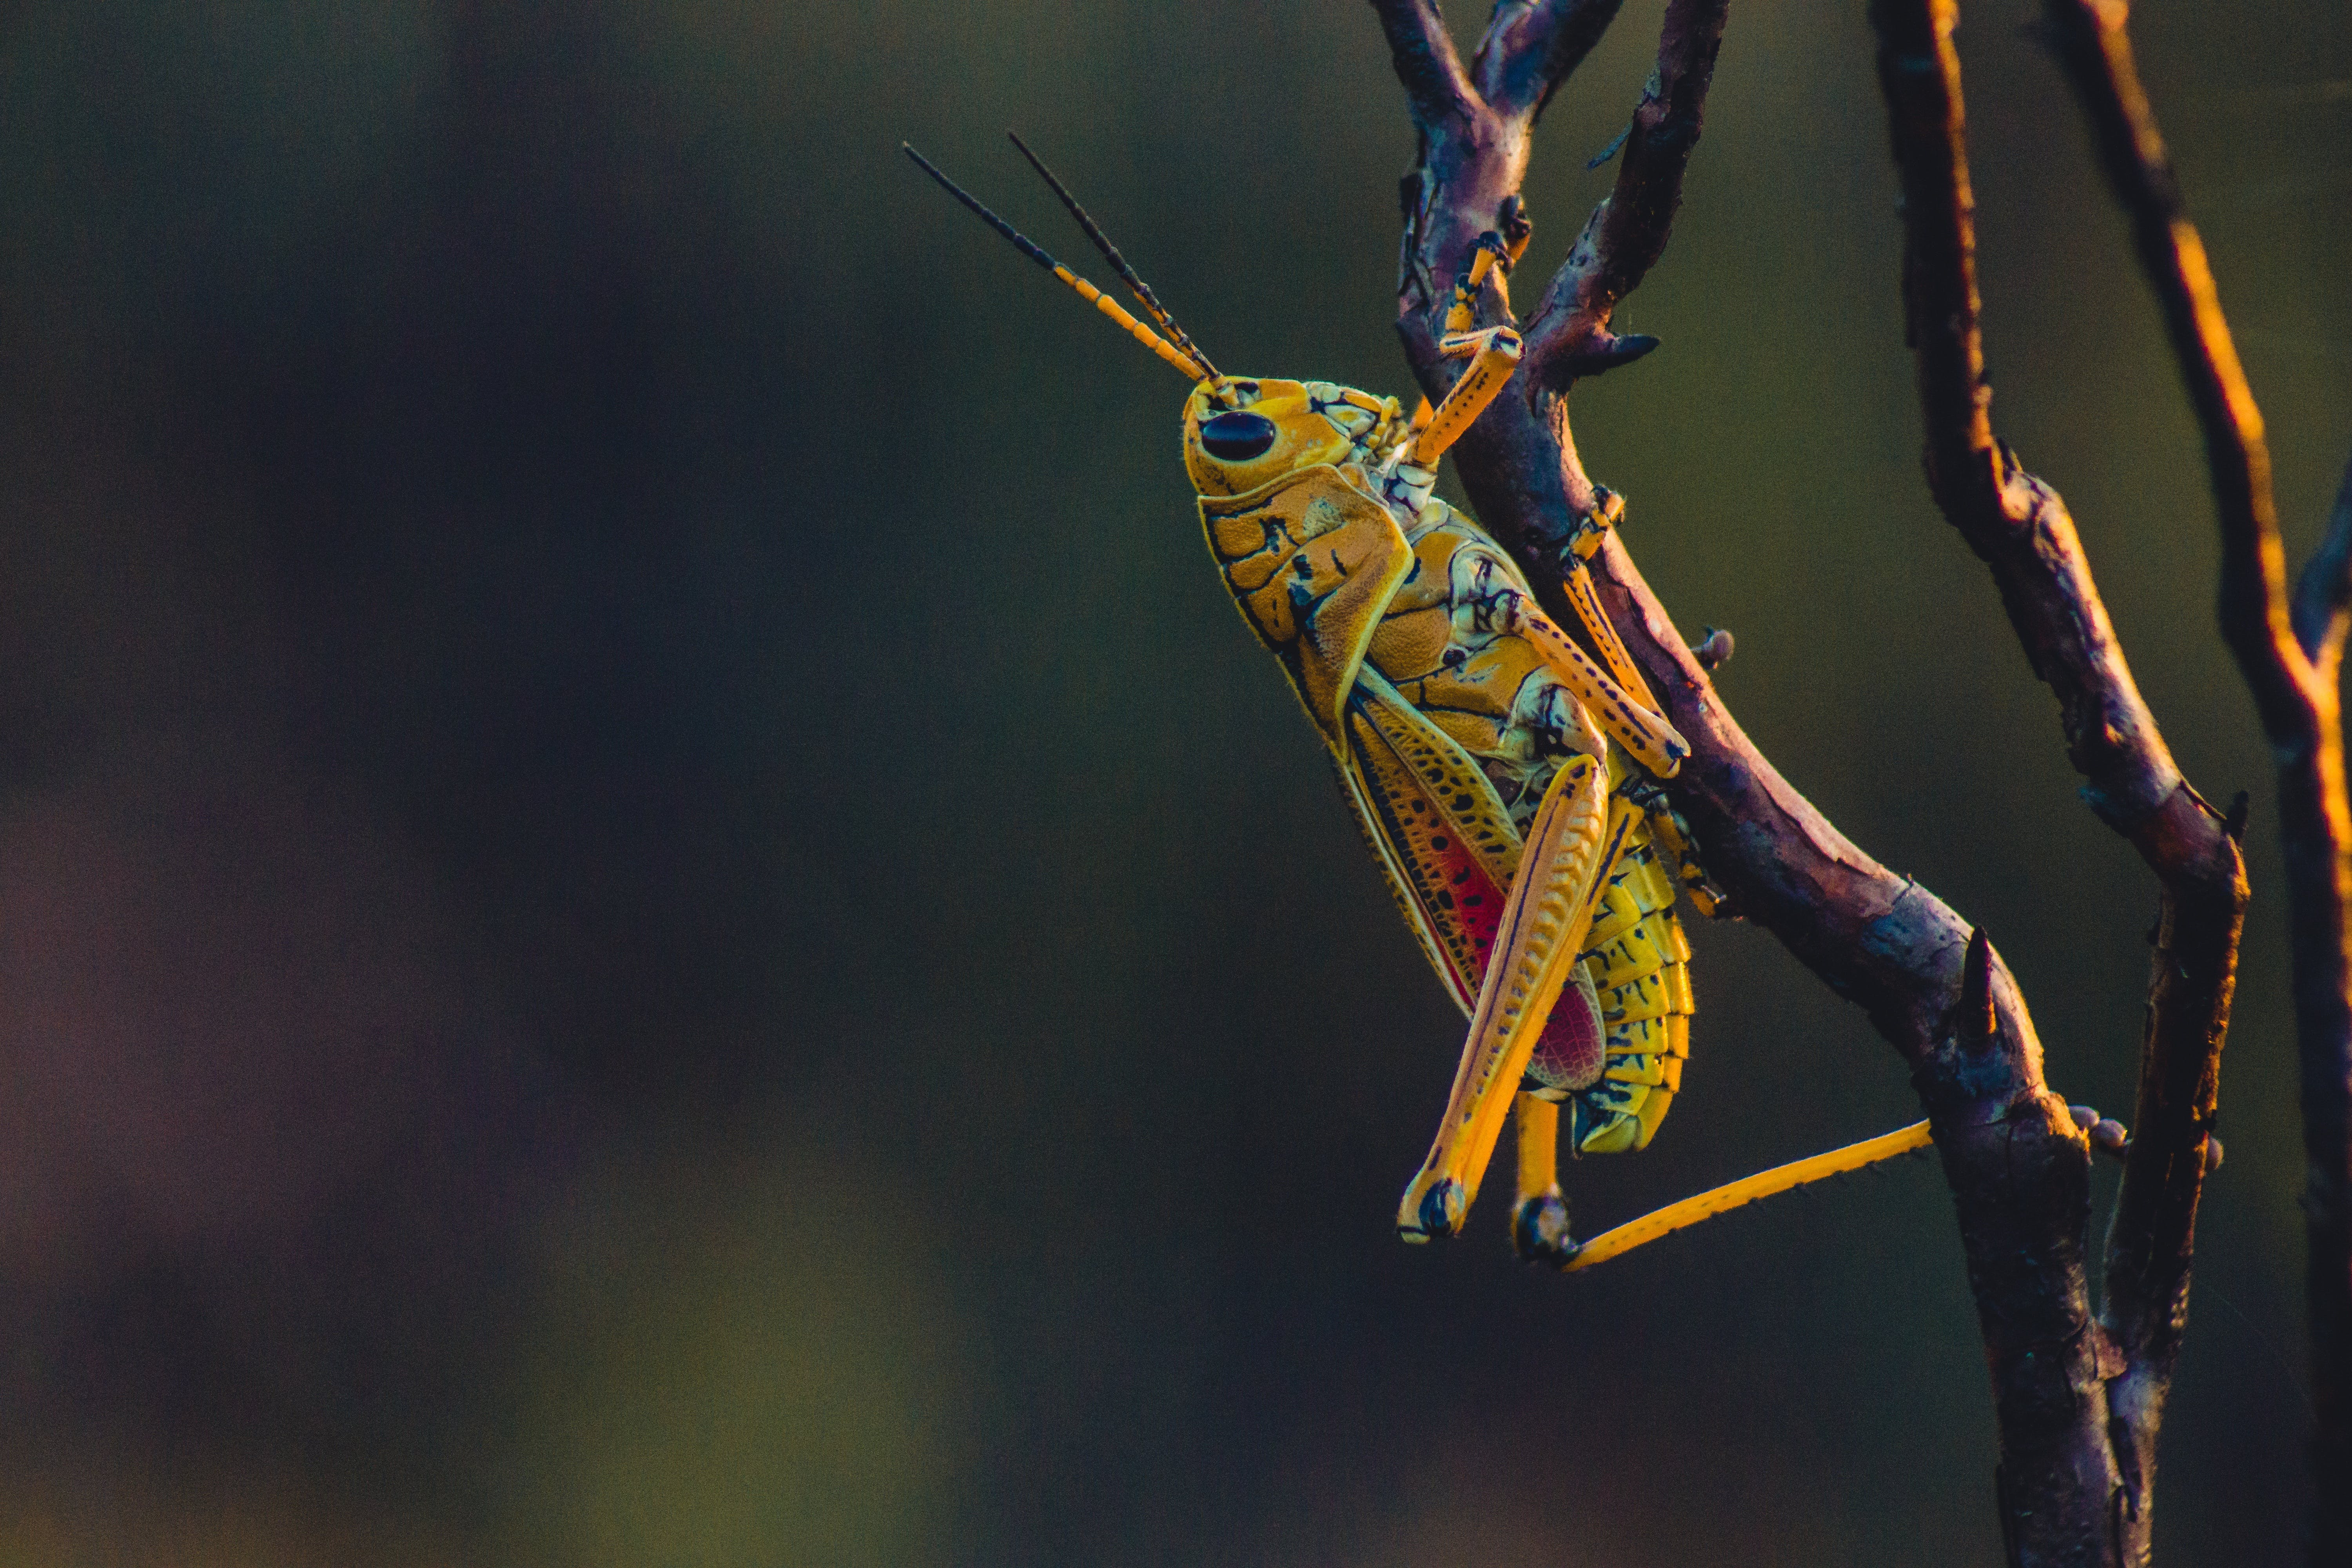 Gratis stockfoto met close-up, insect, kever, macro